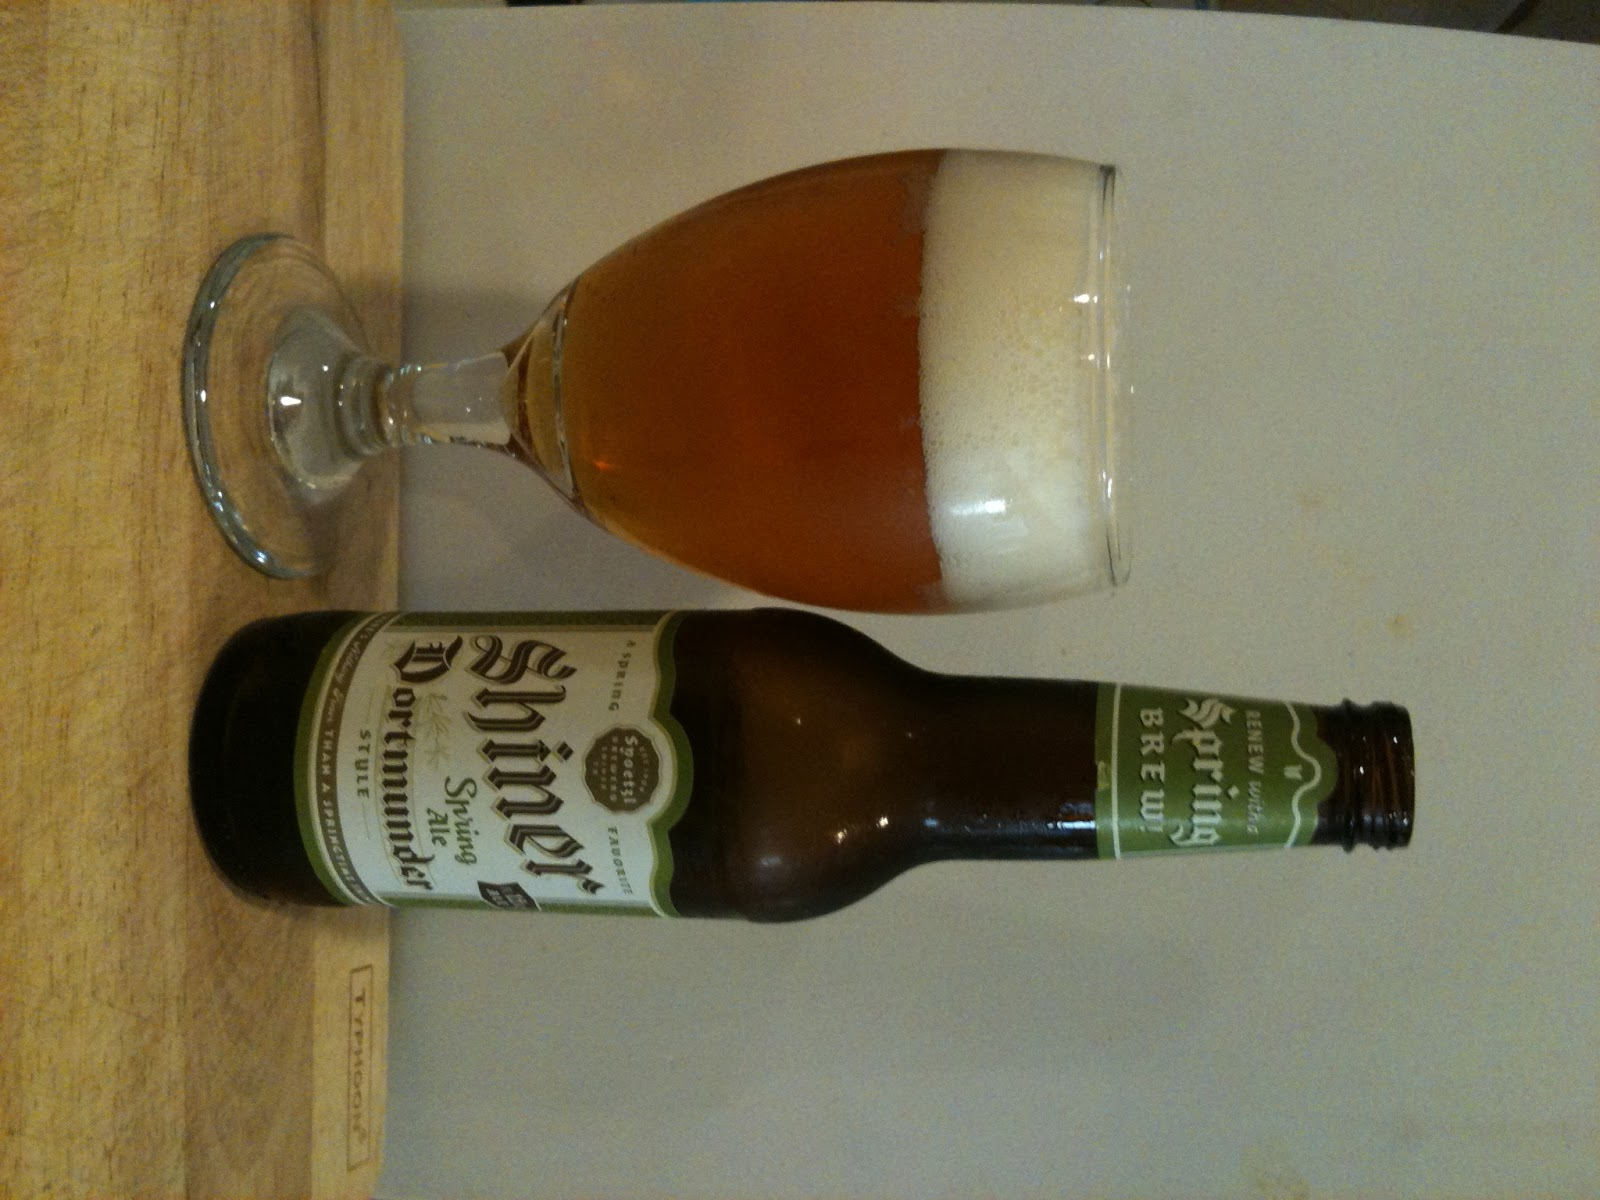 Diary of a Beer Drinker: April 2011